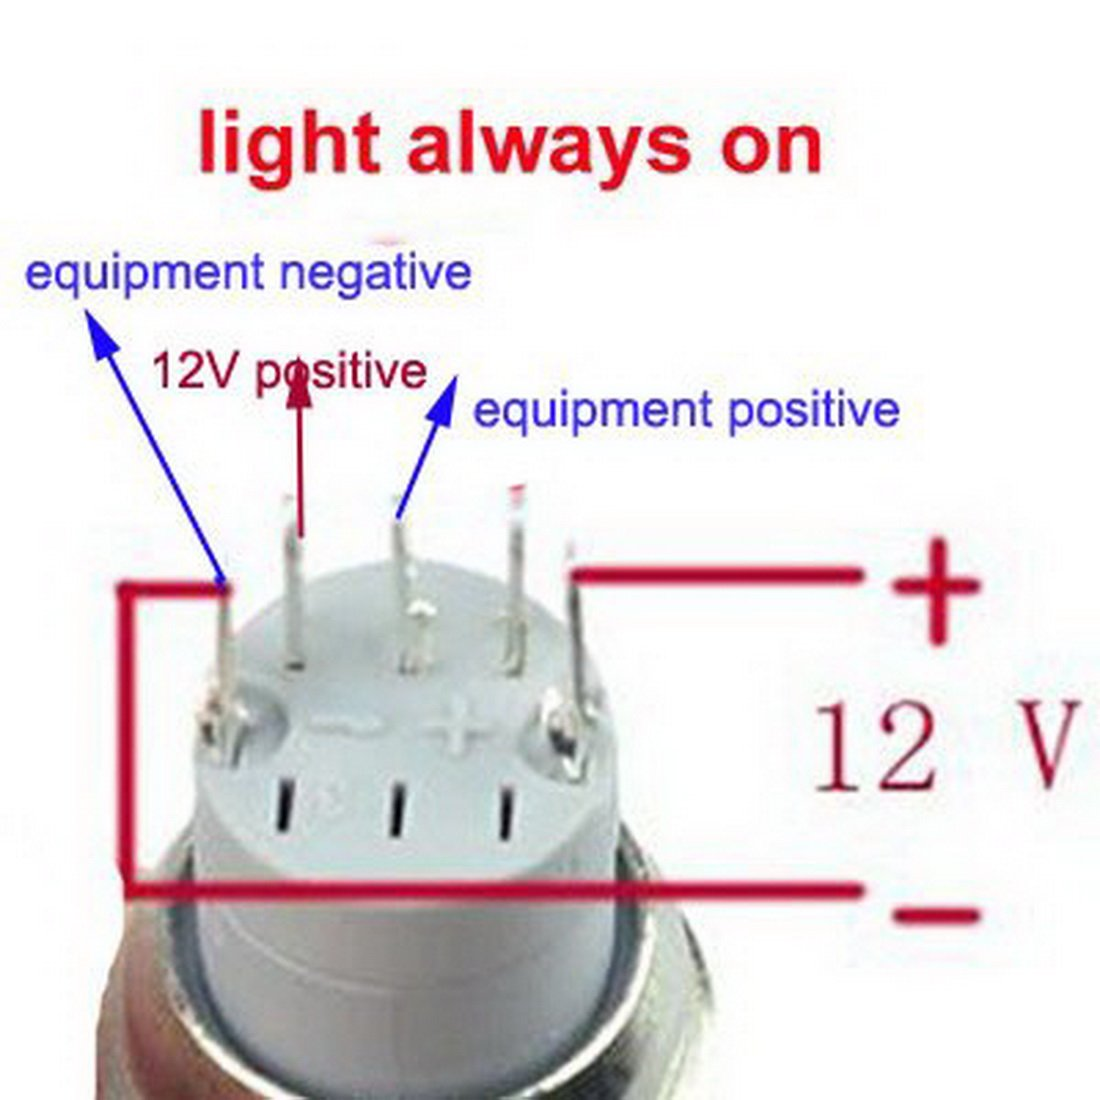 Wiring A Button Switch Manual Guide Diagram Painless Starter Us Solid 16mm Led Latching 55 Images How To